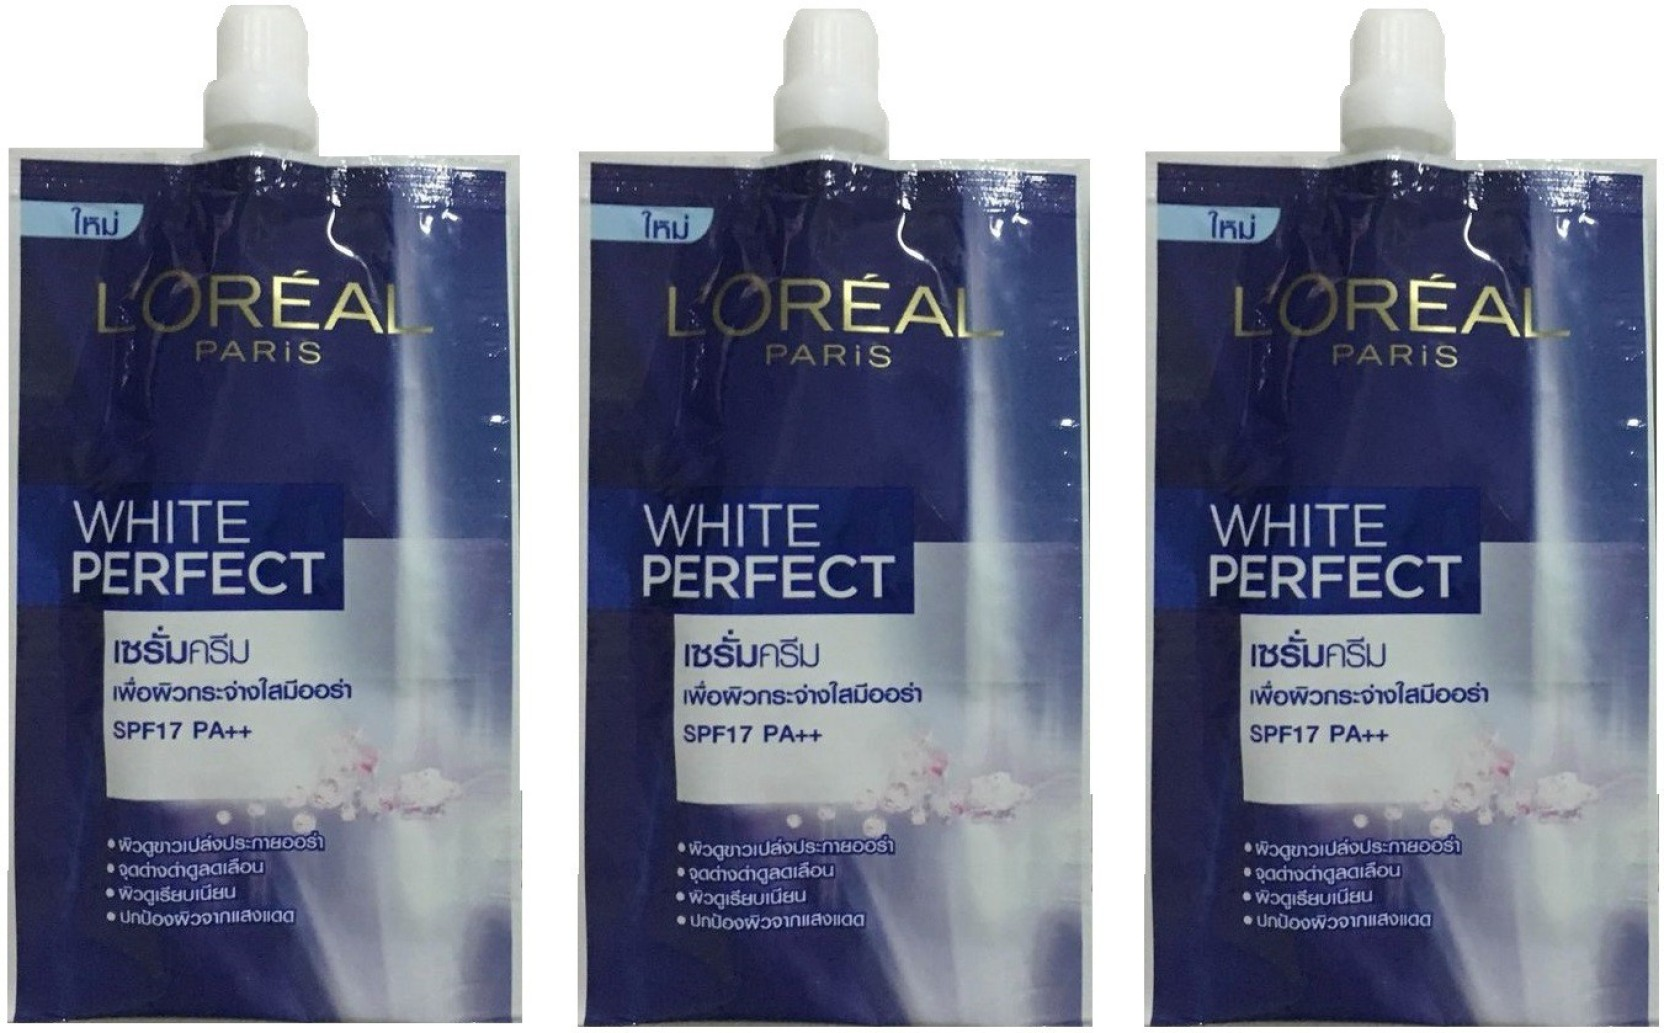 Loreal Paris White Perfect Serum Cream Spf 17 Pa Price In India Day Whitening Even Tone Share